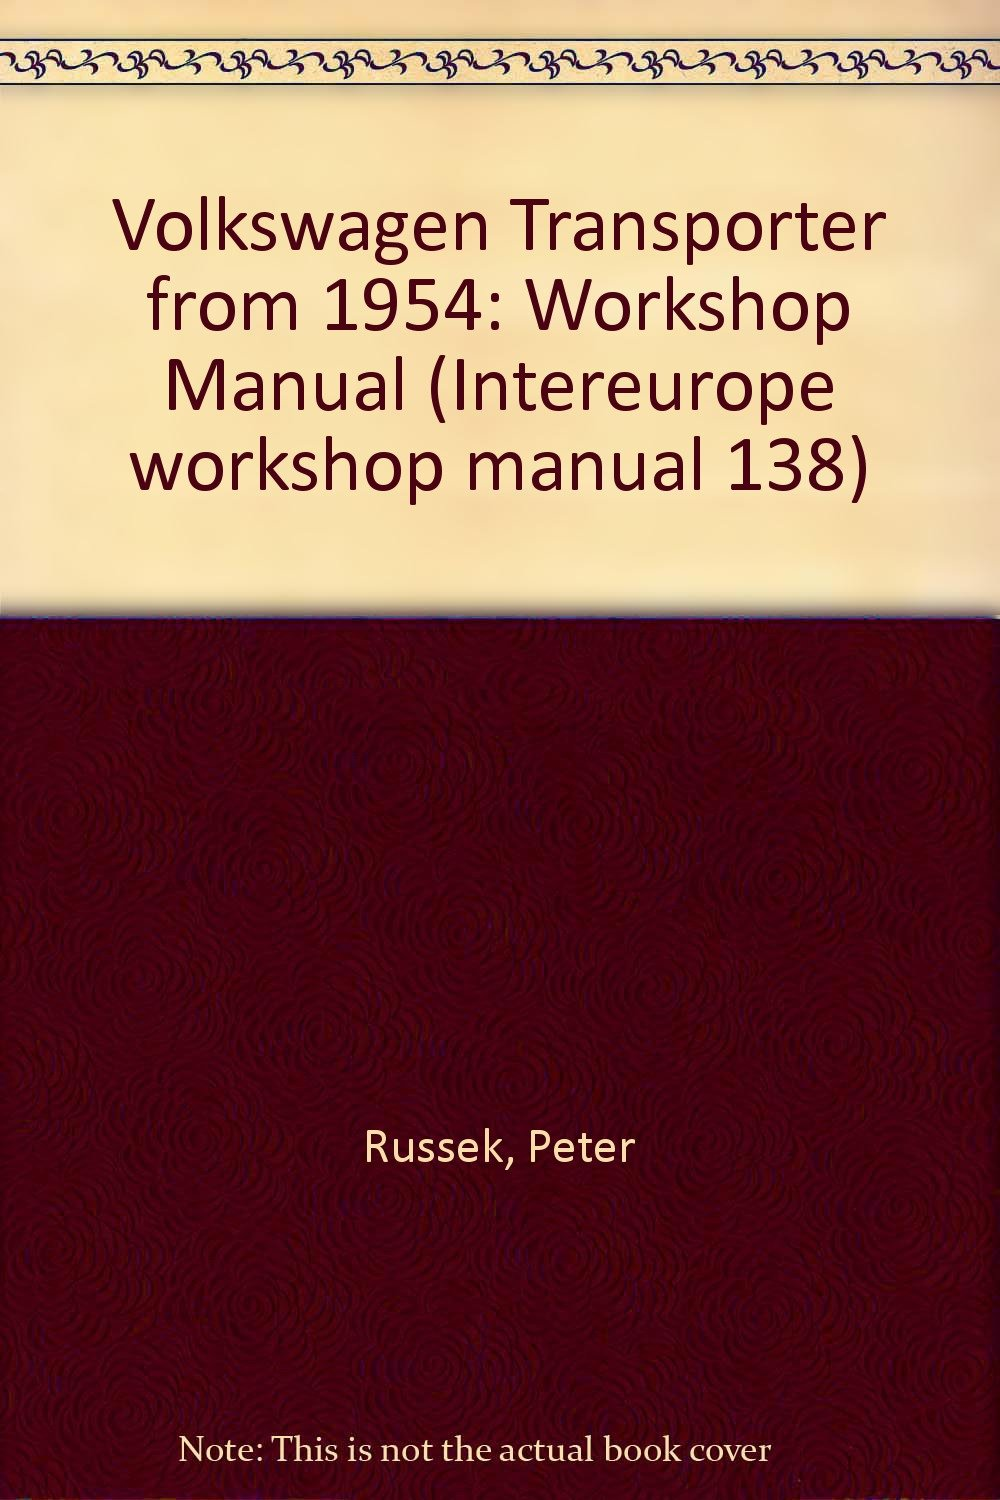 Volkswagen Transporter from 1954: Workshop Manual